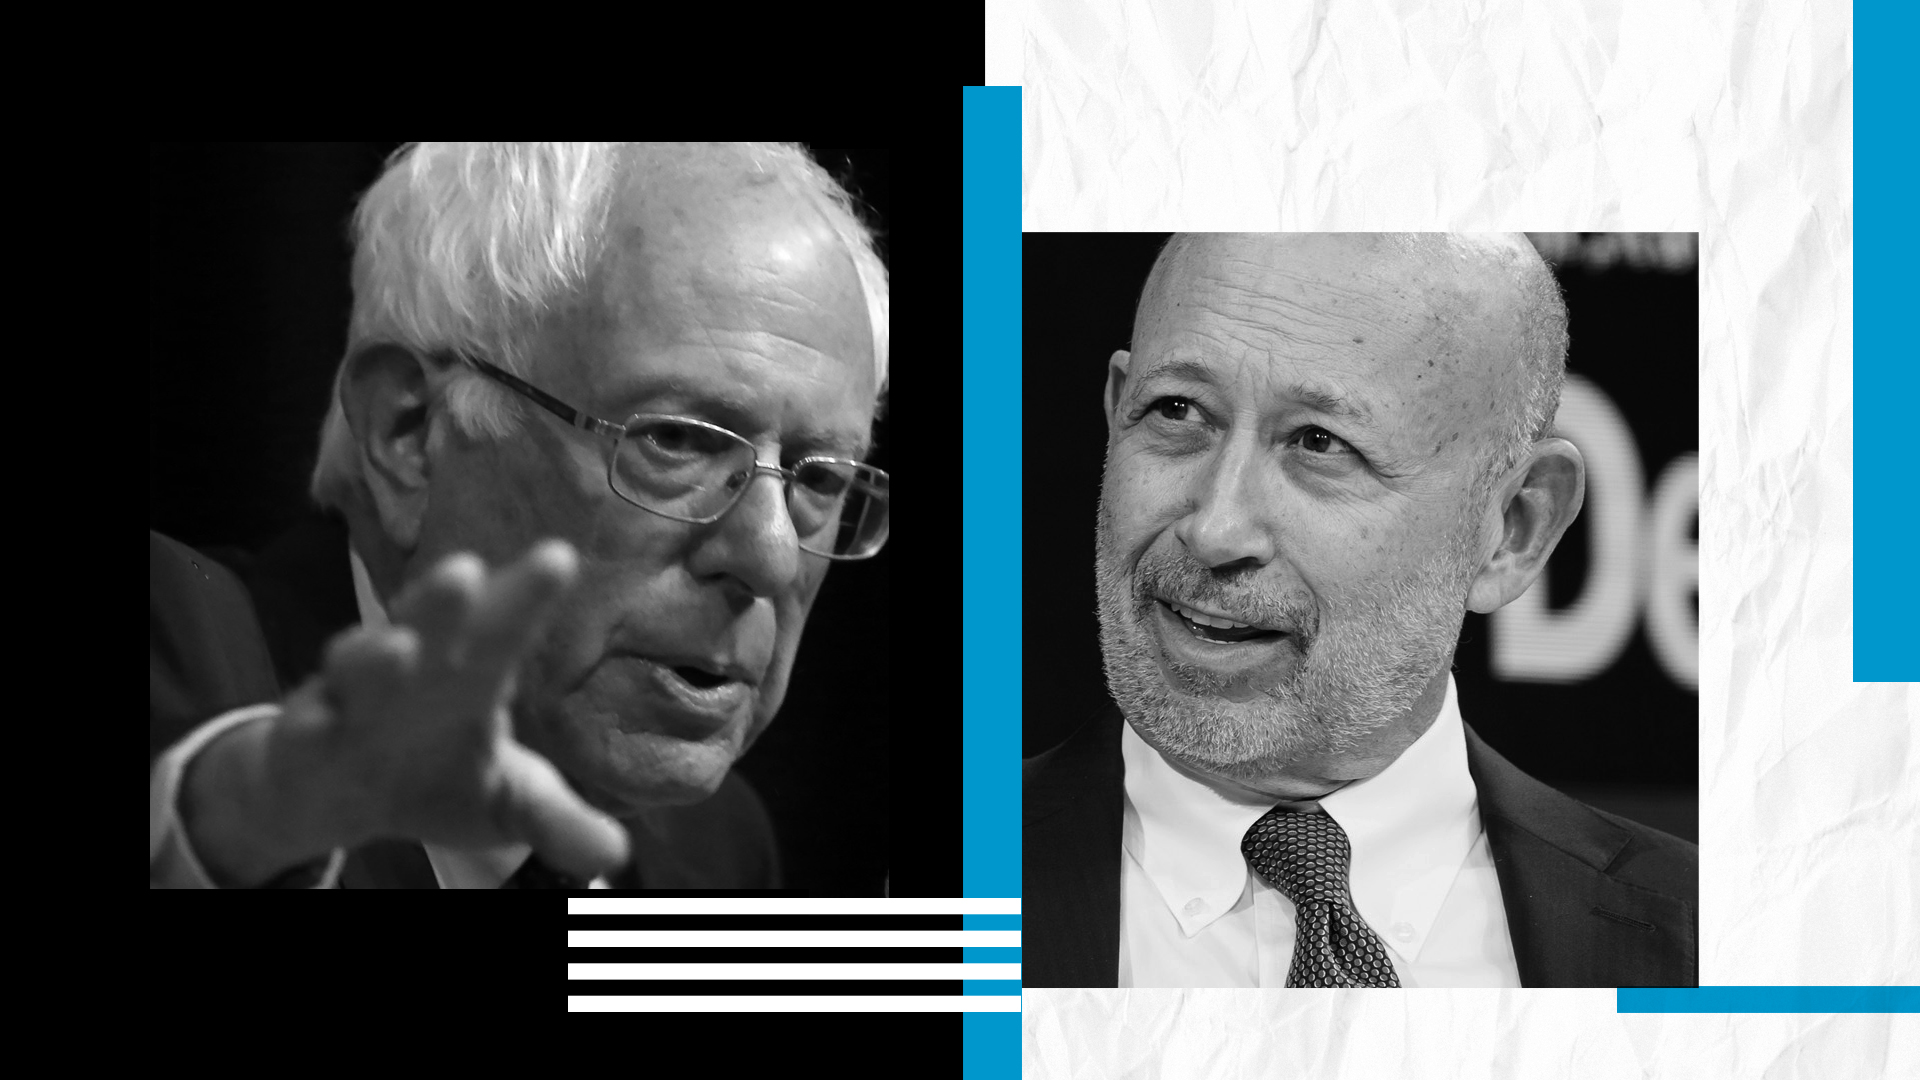 Bernie Sanders and Lloyd Blankfein